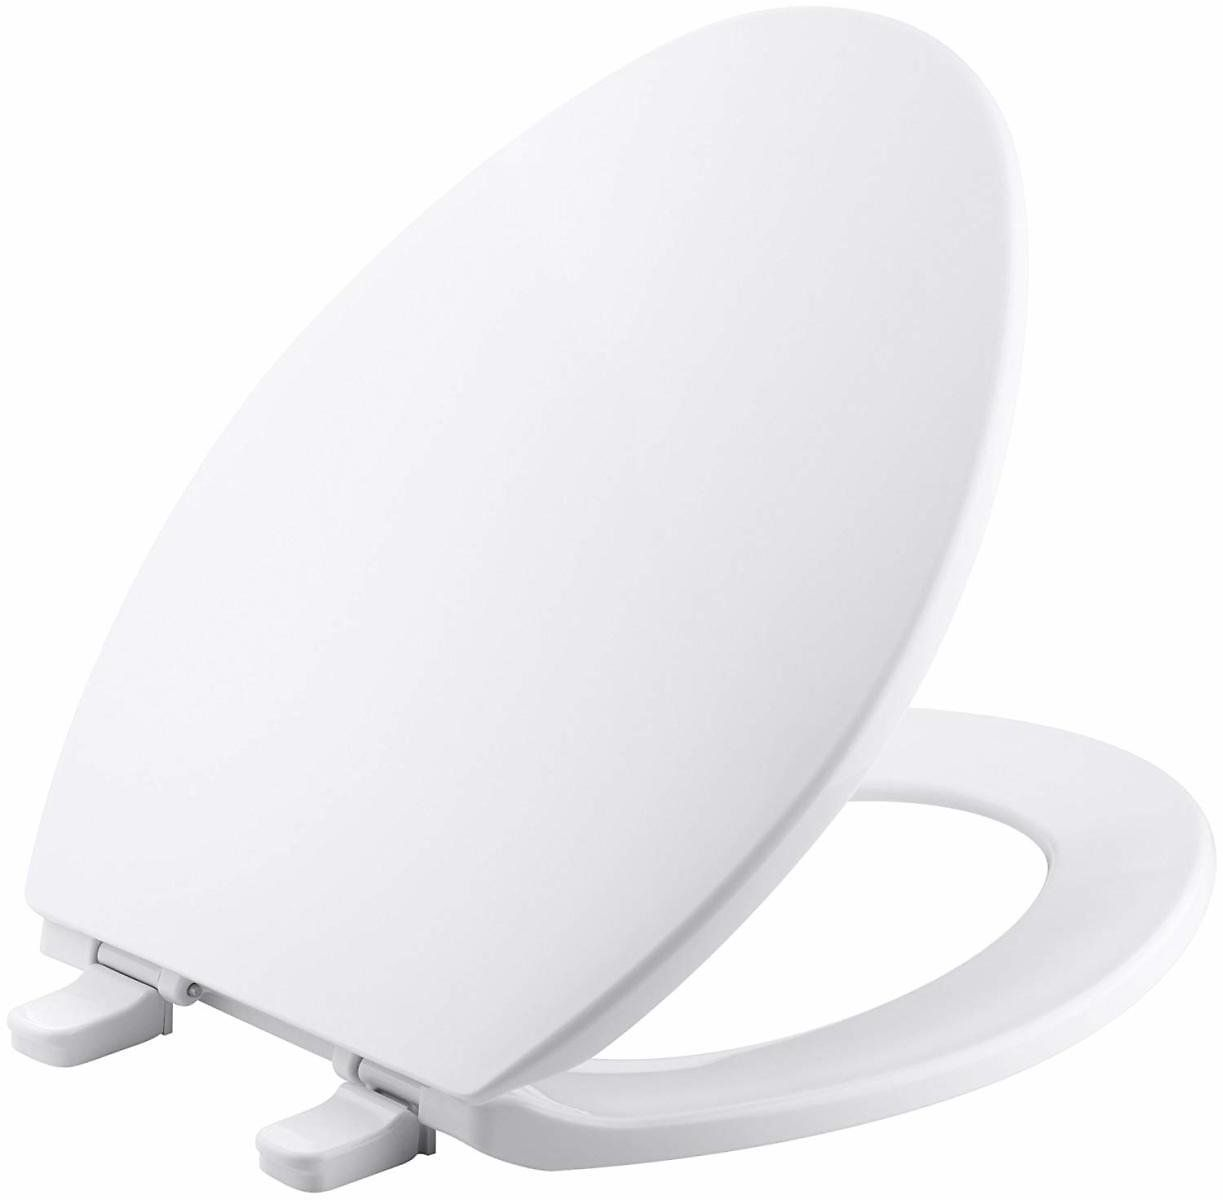 Amazon Offers Kohler Brevia Quick Release Elongated Toilet Seat